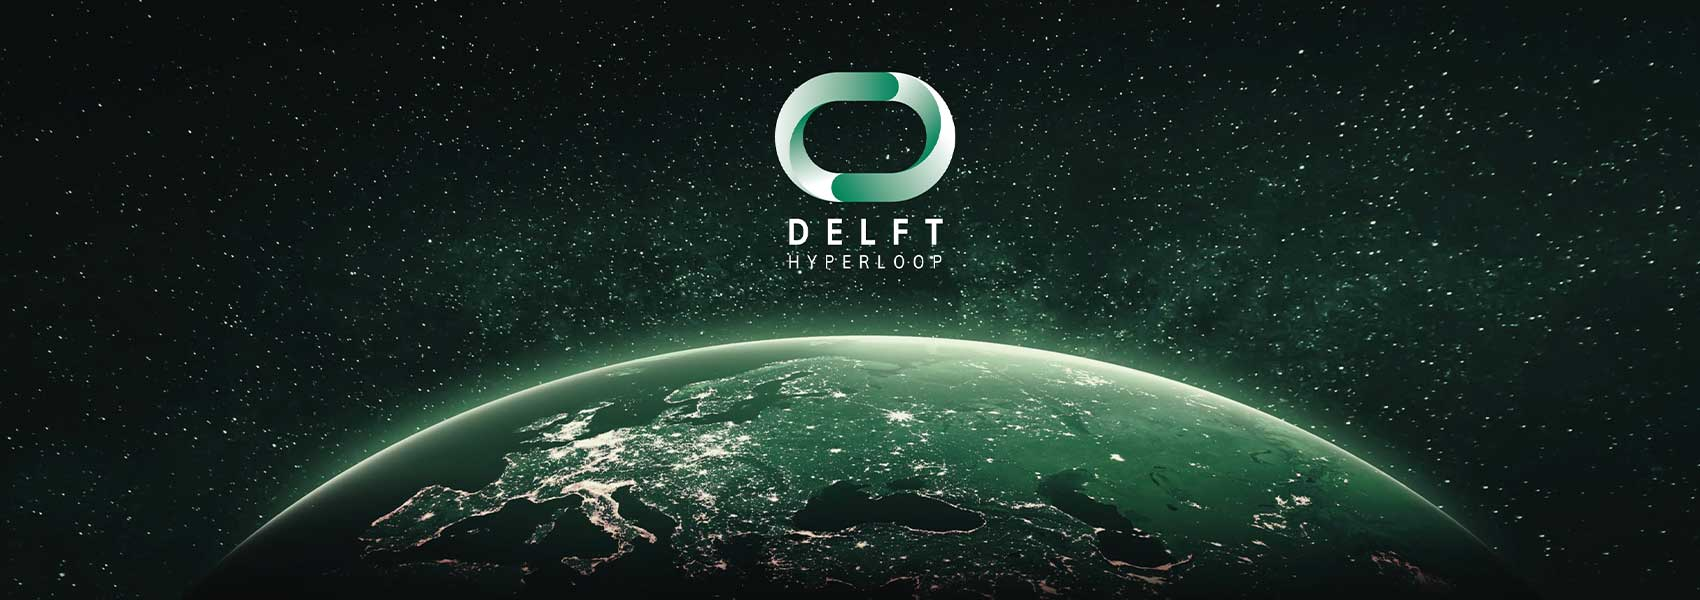 Defly Hyperloop Blog Banner